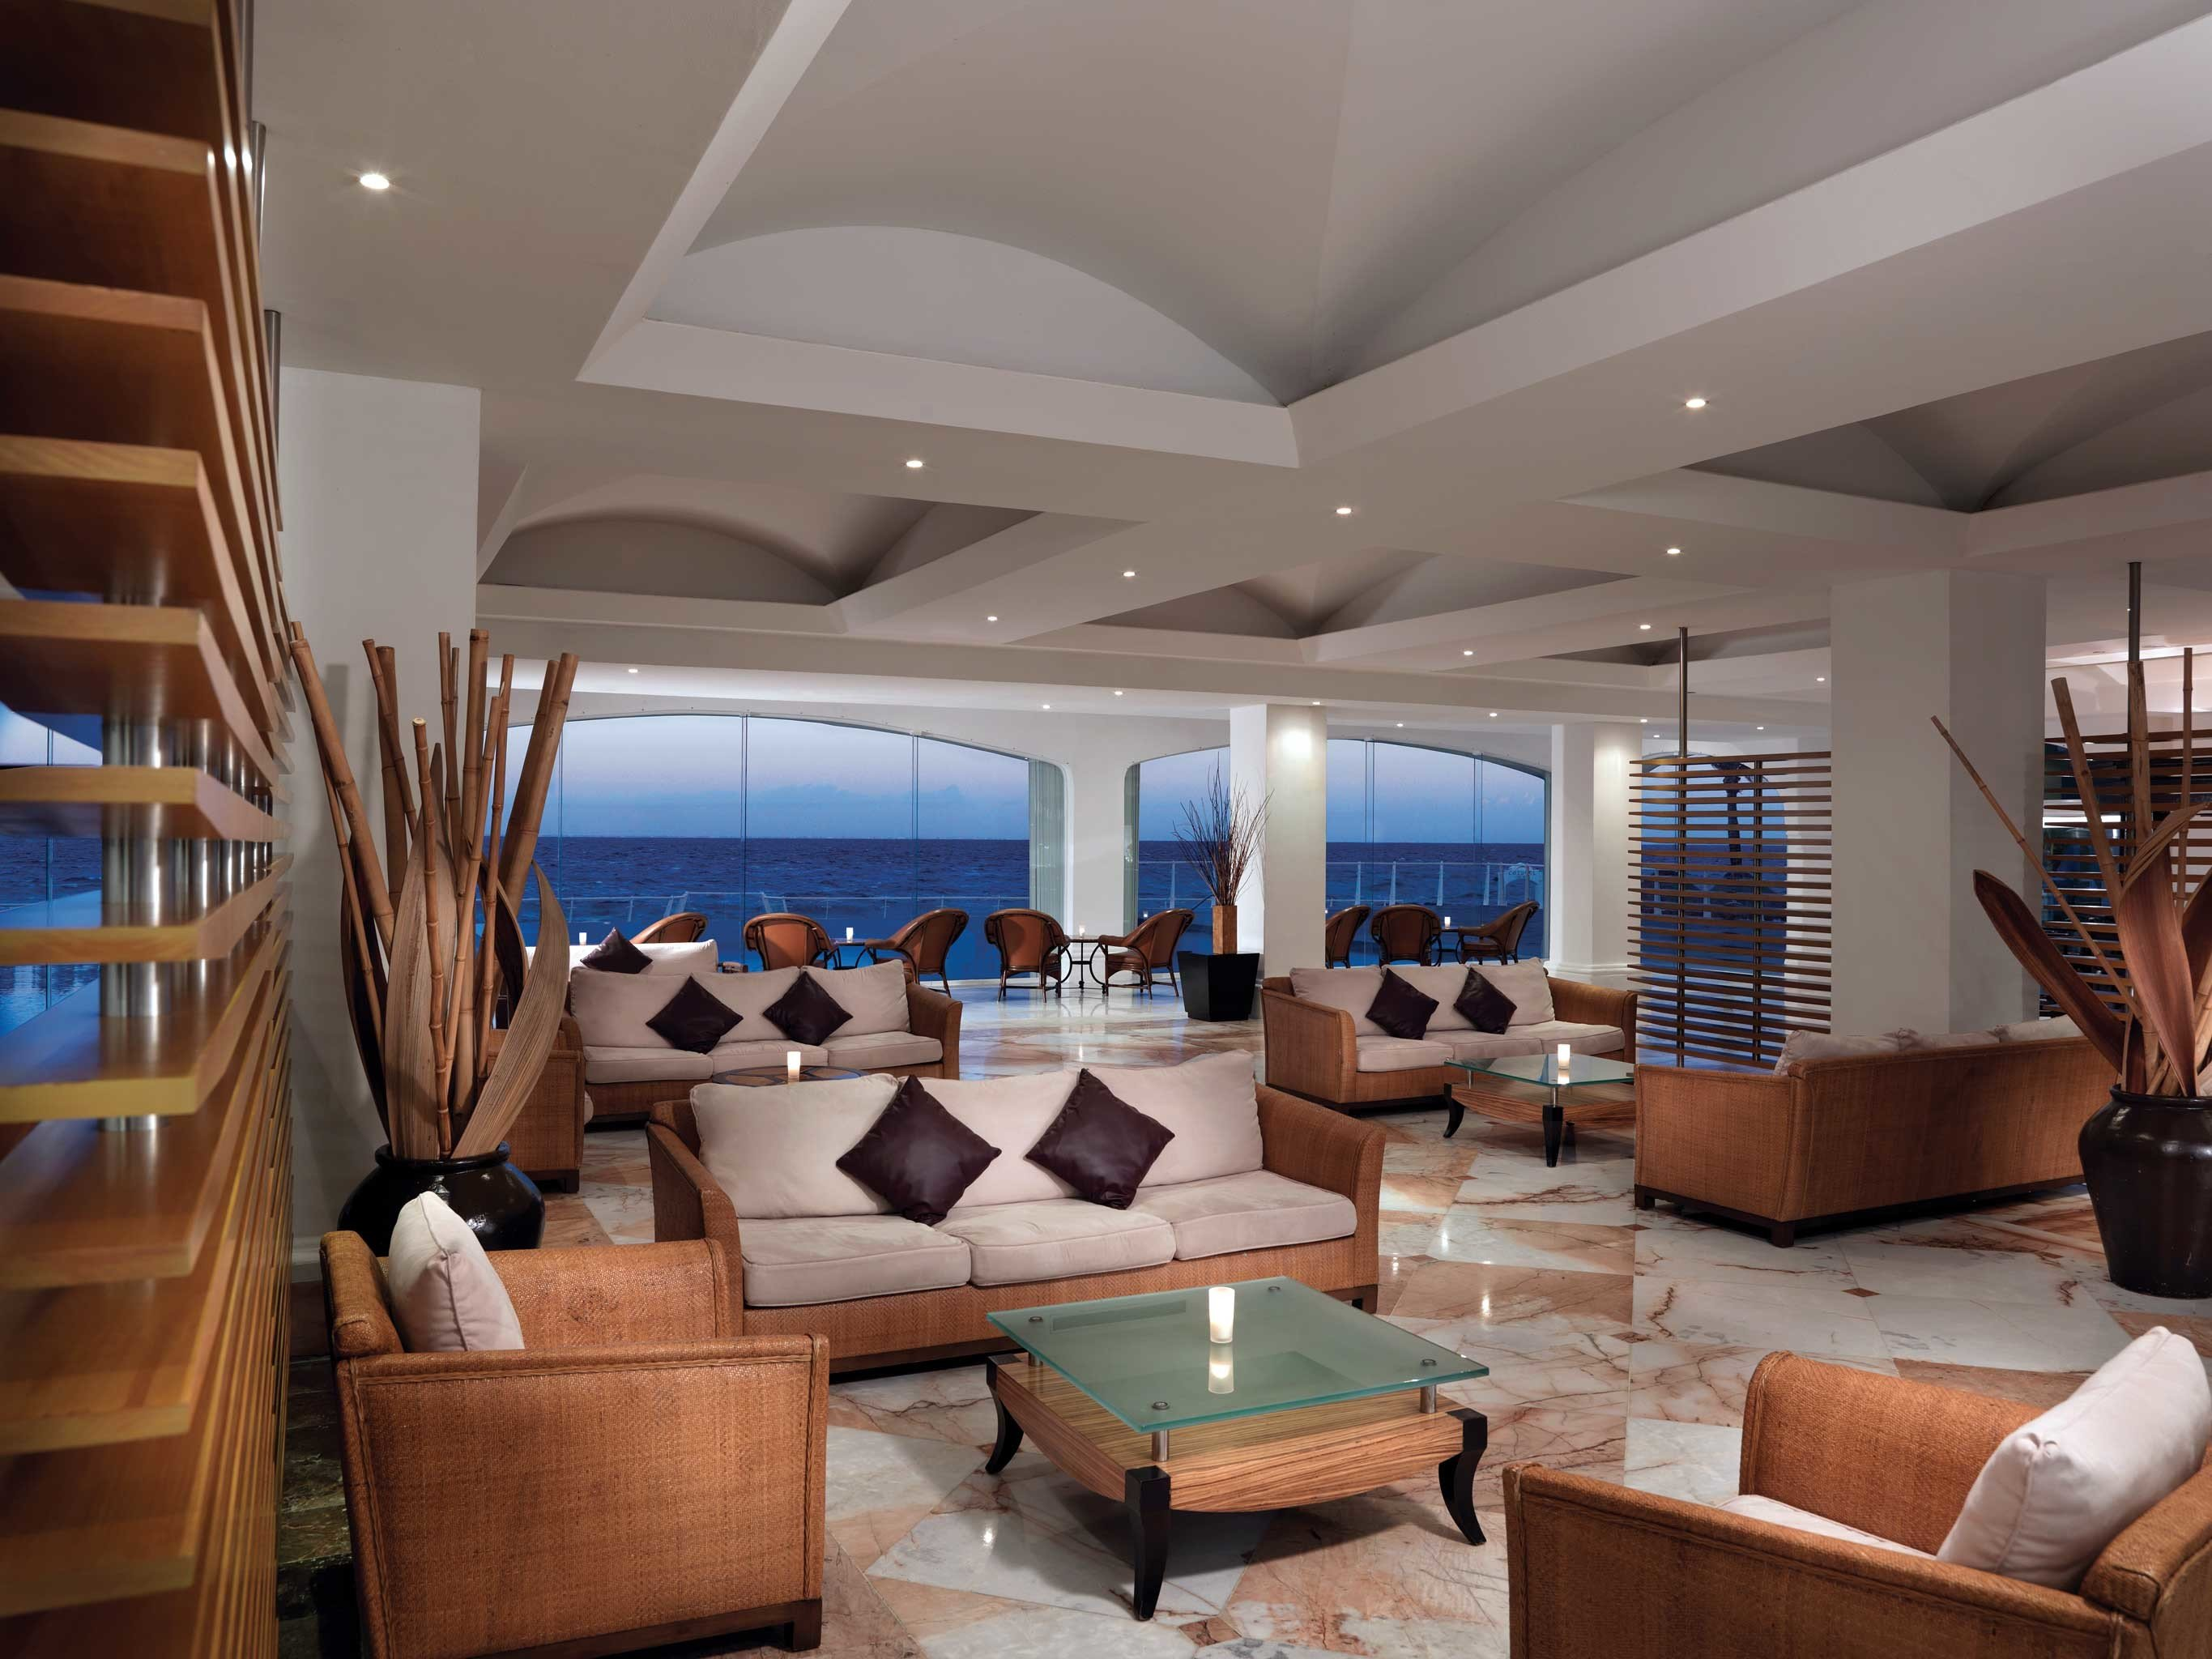 All-inclusive Beachfront Hotels Lounge Luxury Romance Scenic views indoor ceiling room floor property chair Living Lobby living room Boat estate yacht condominium passenger ship interior design Resort furniture home real estate ship luxury yacht several